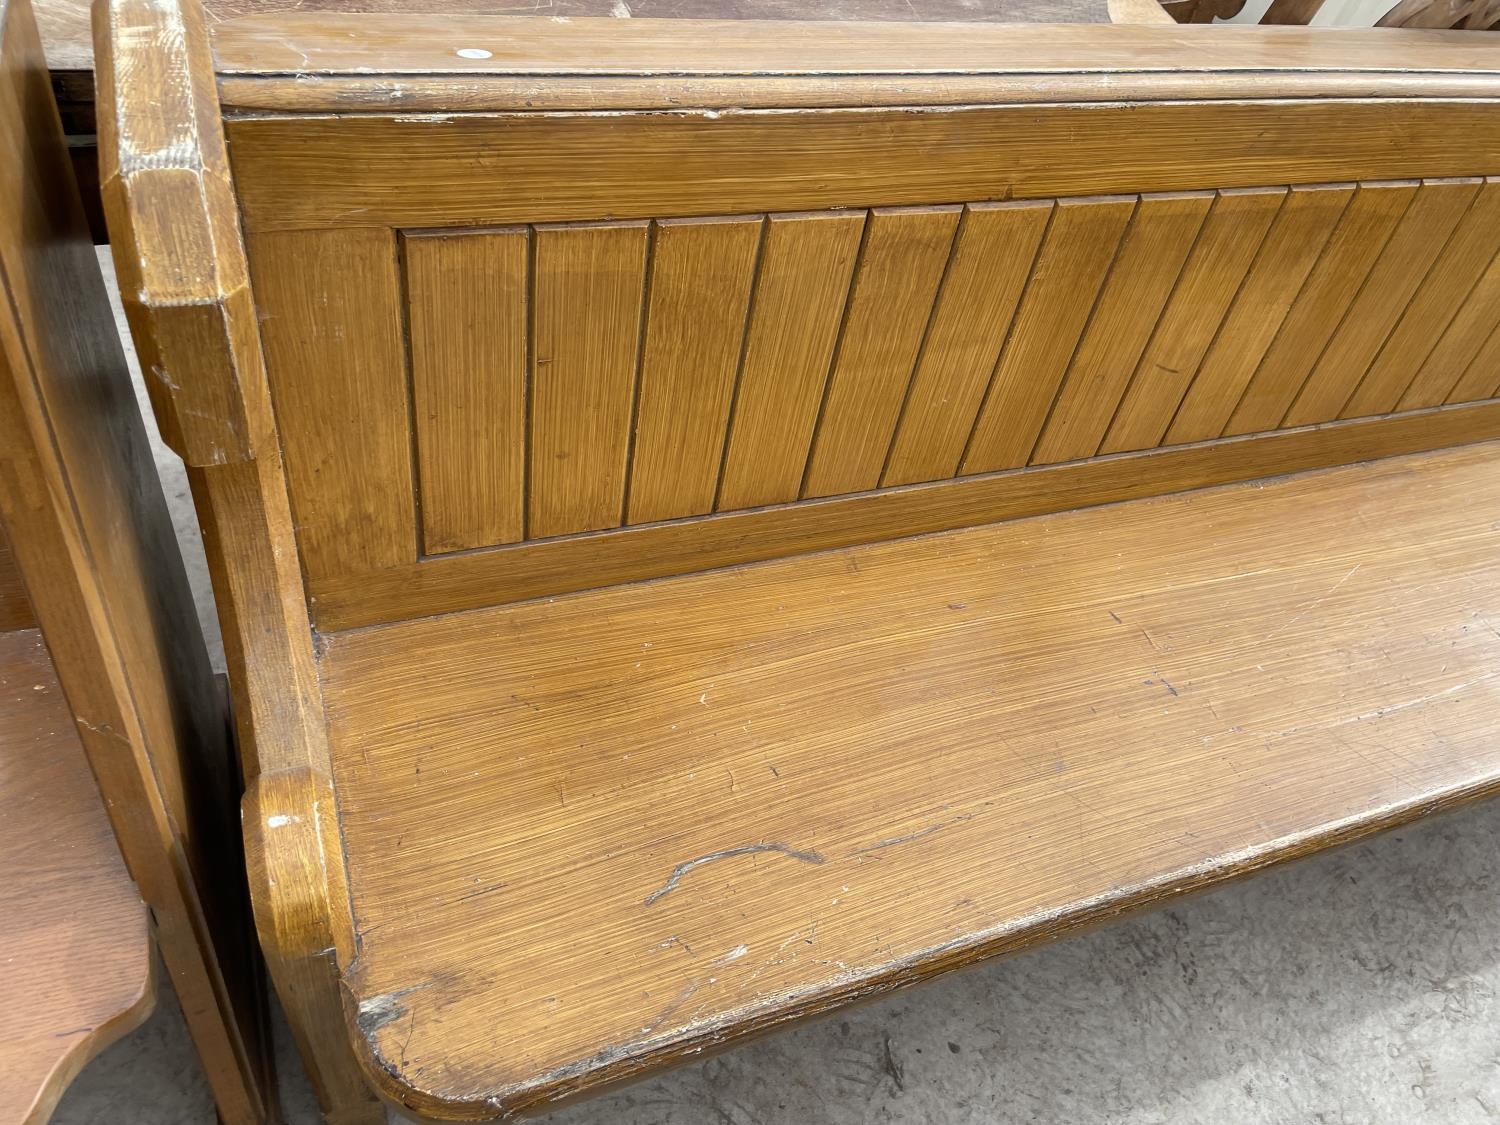 A VICTORIAN SCUMBLE 13' CHURCH PEW - Image 2 of 5